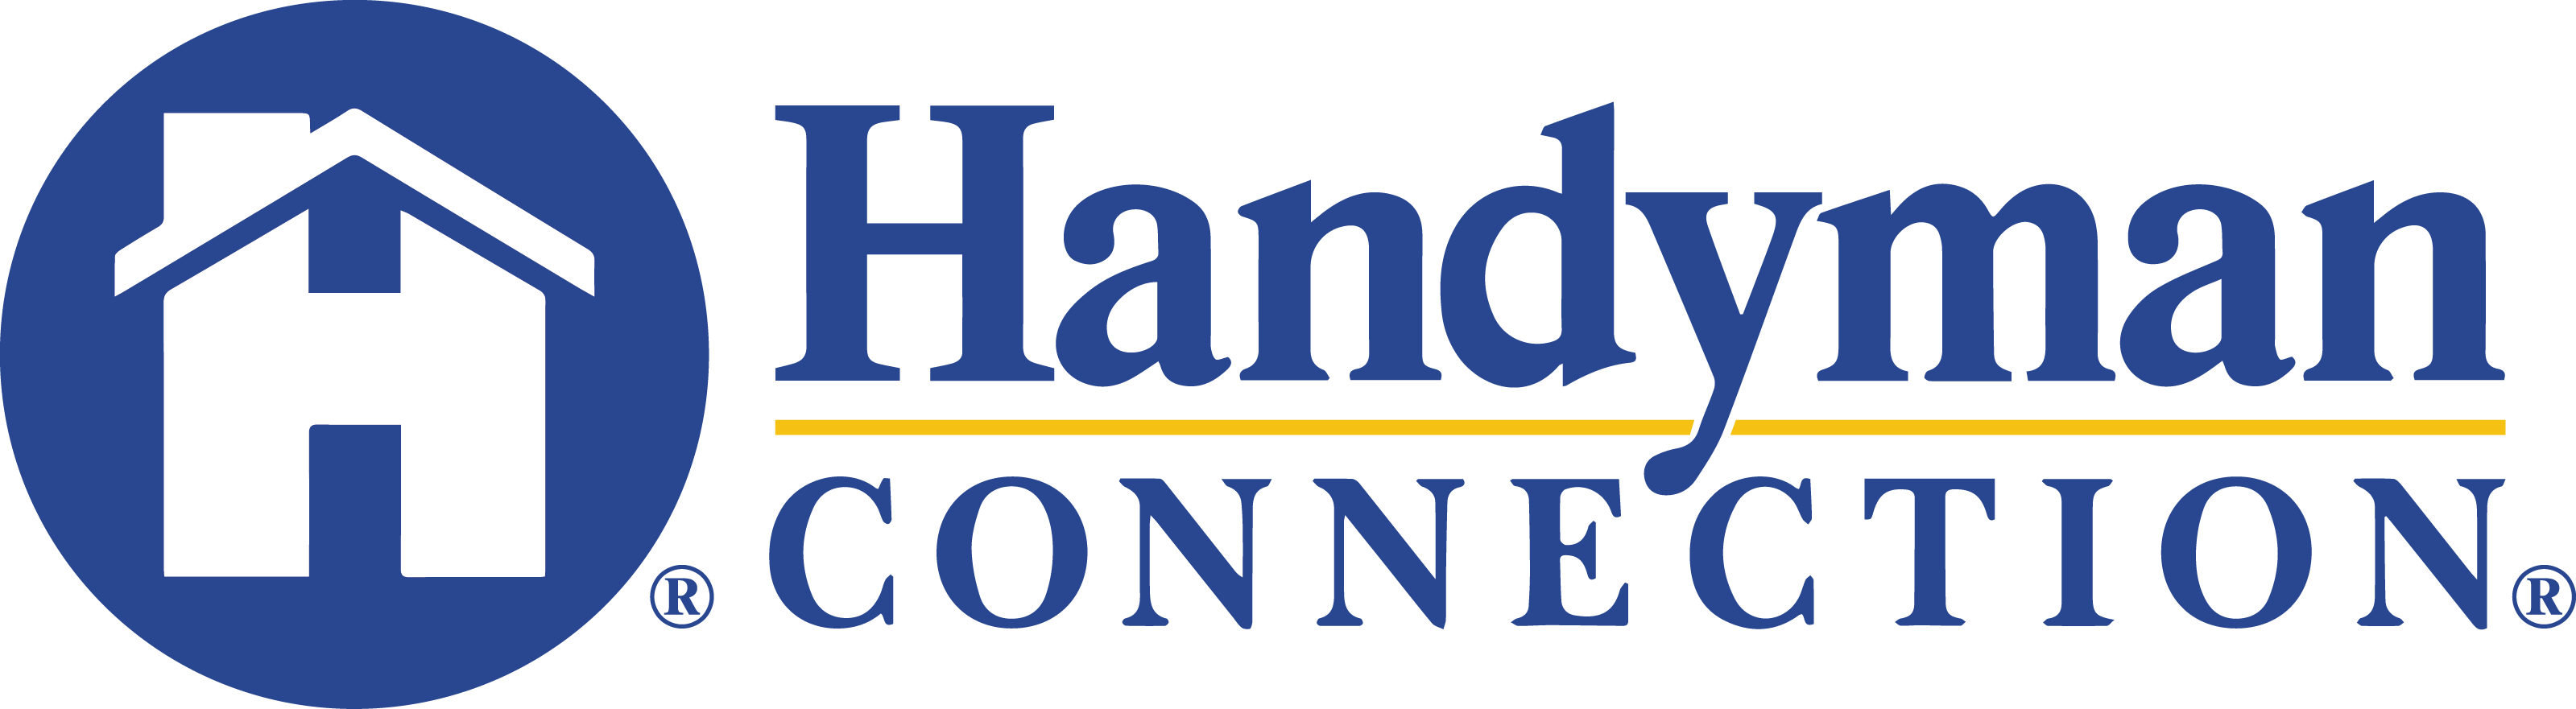 Handyman Connection of Calgary